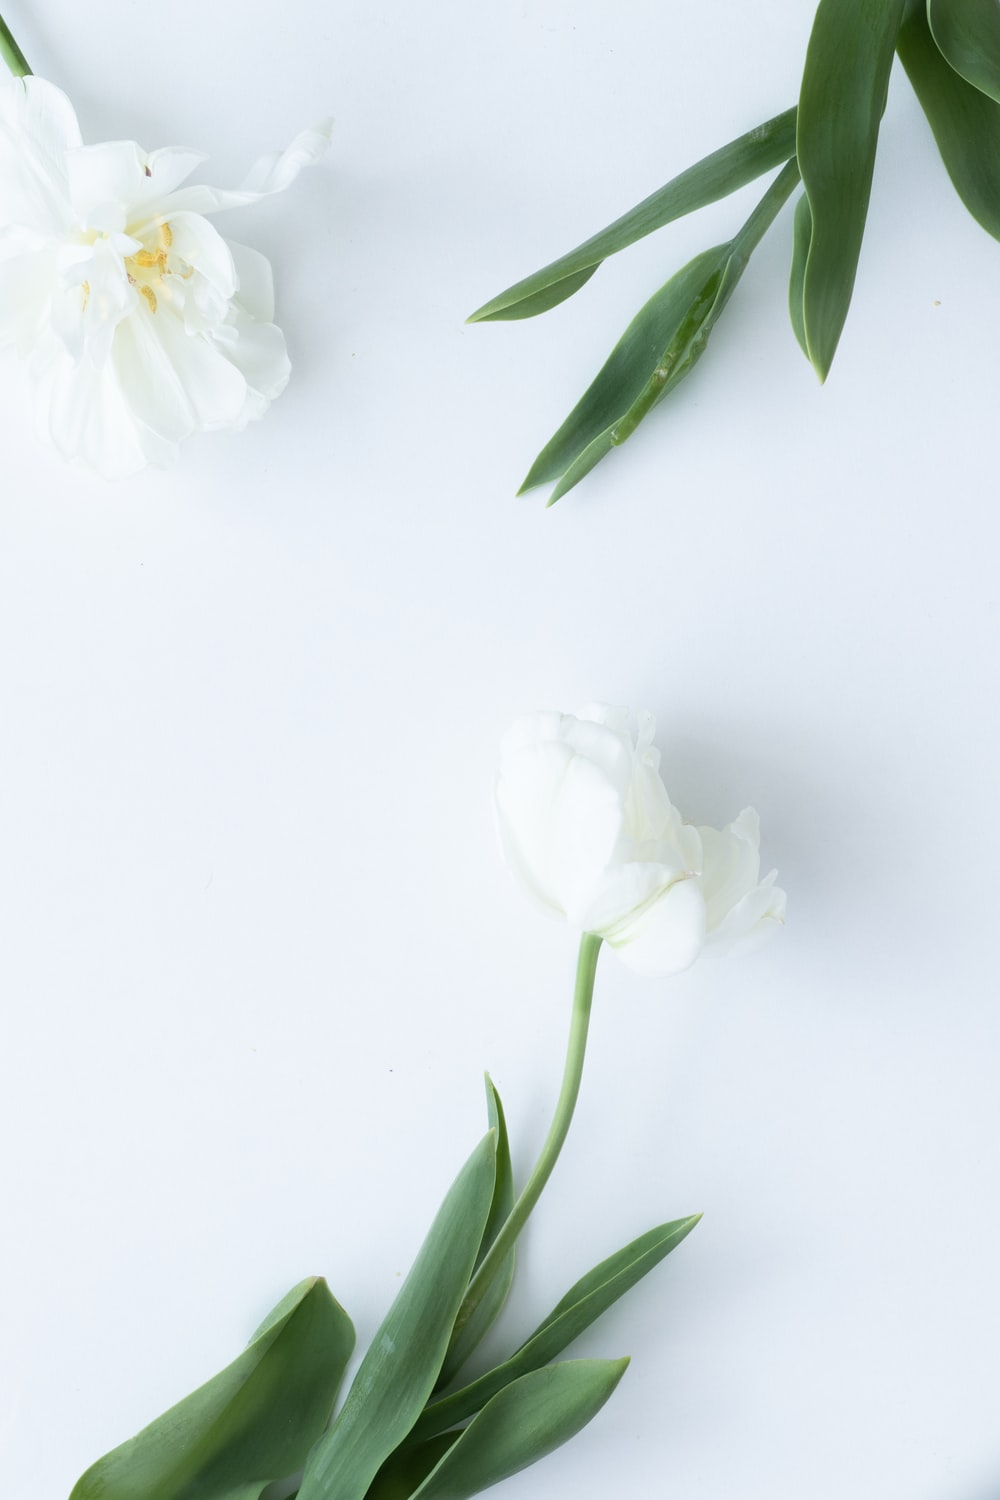 white flower with green leaves